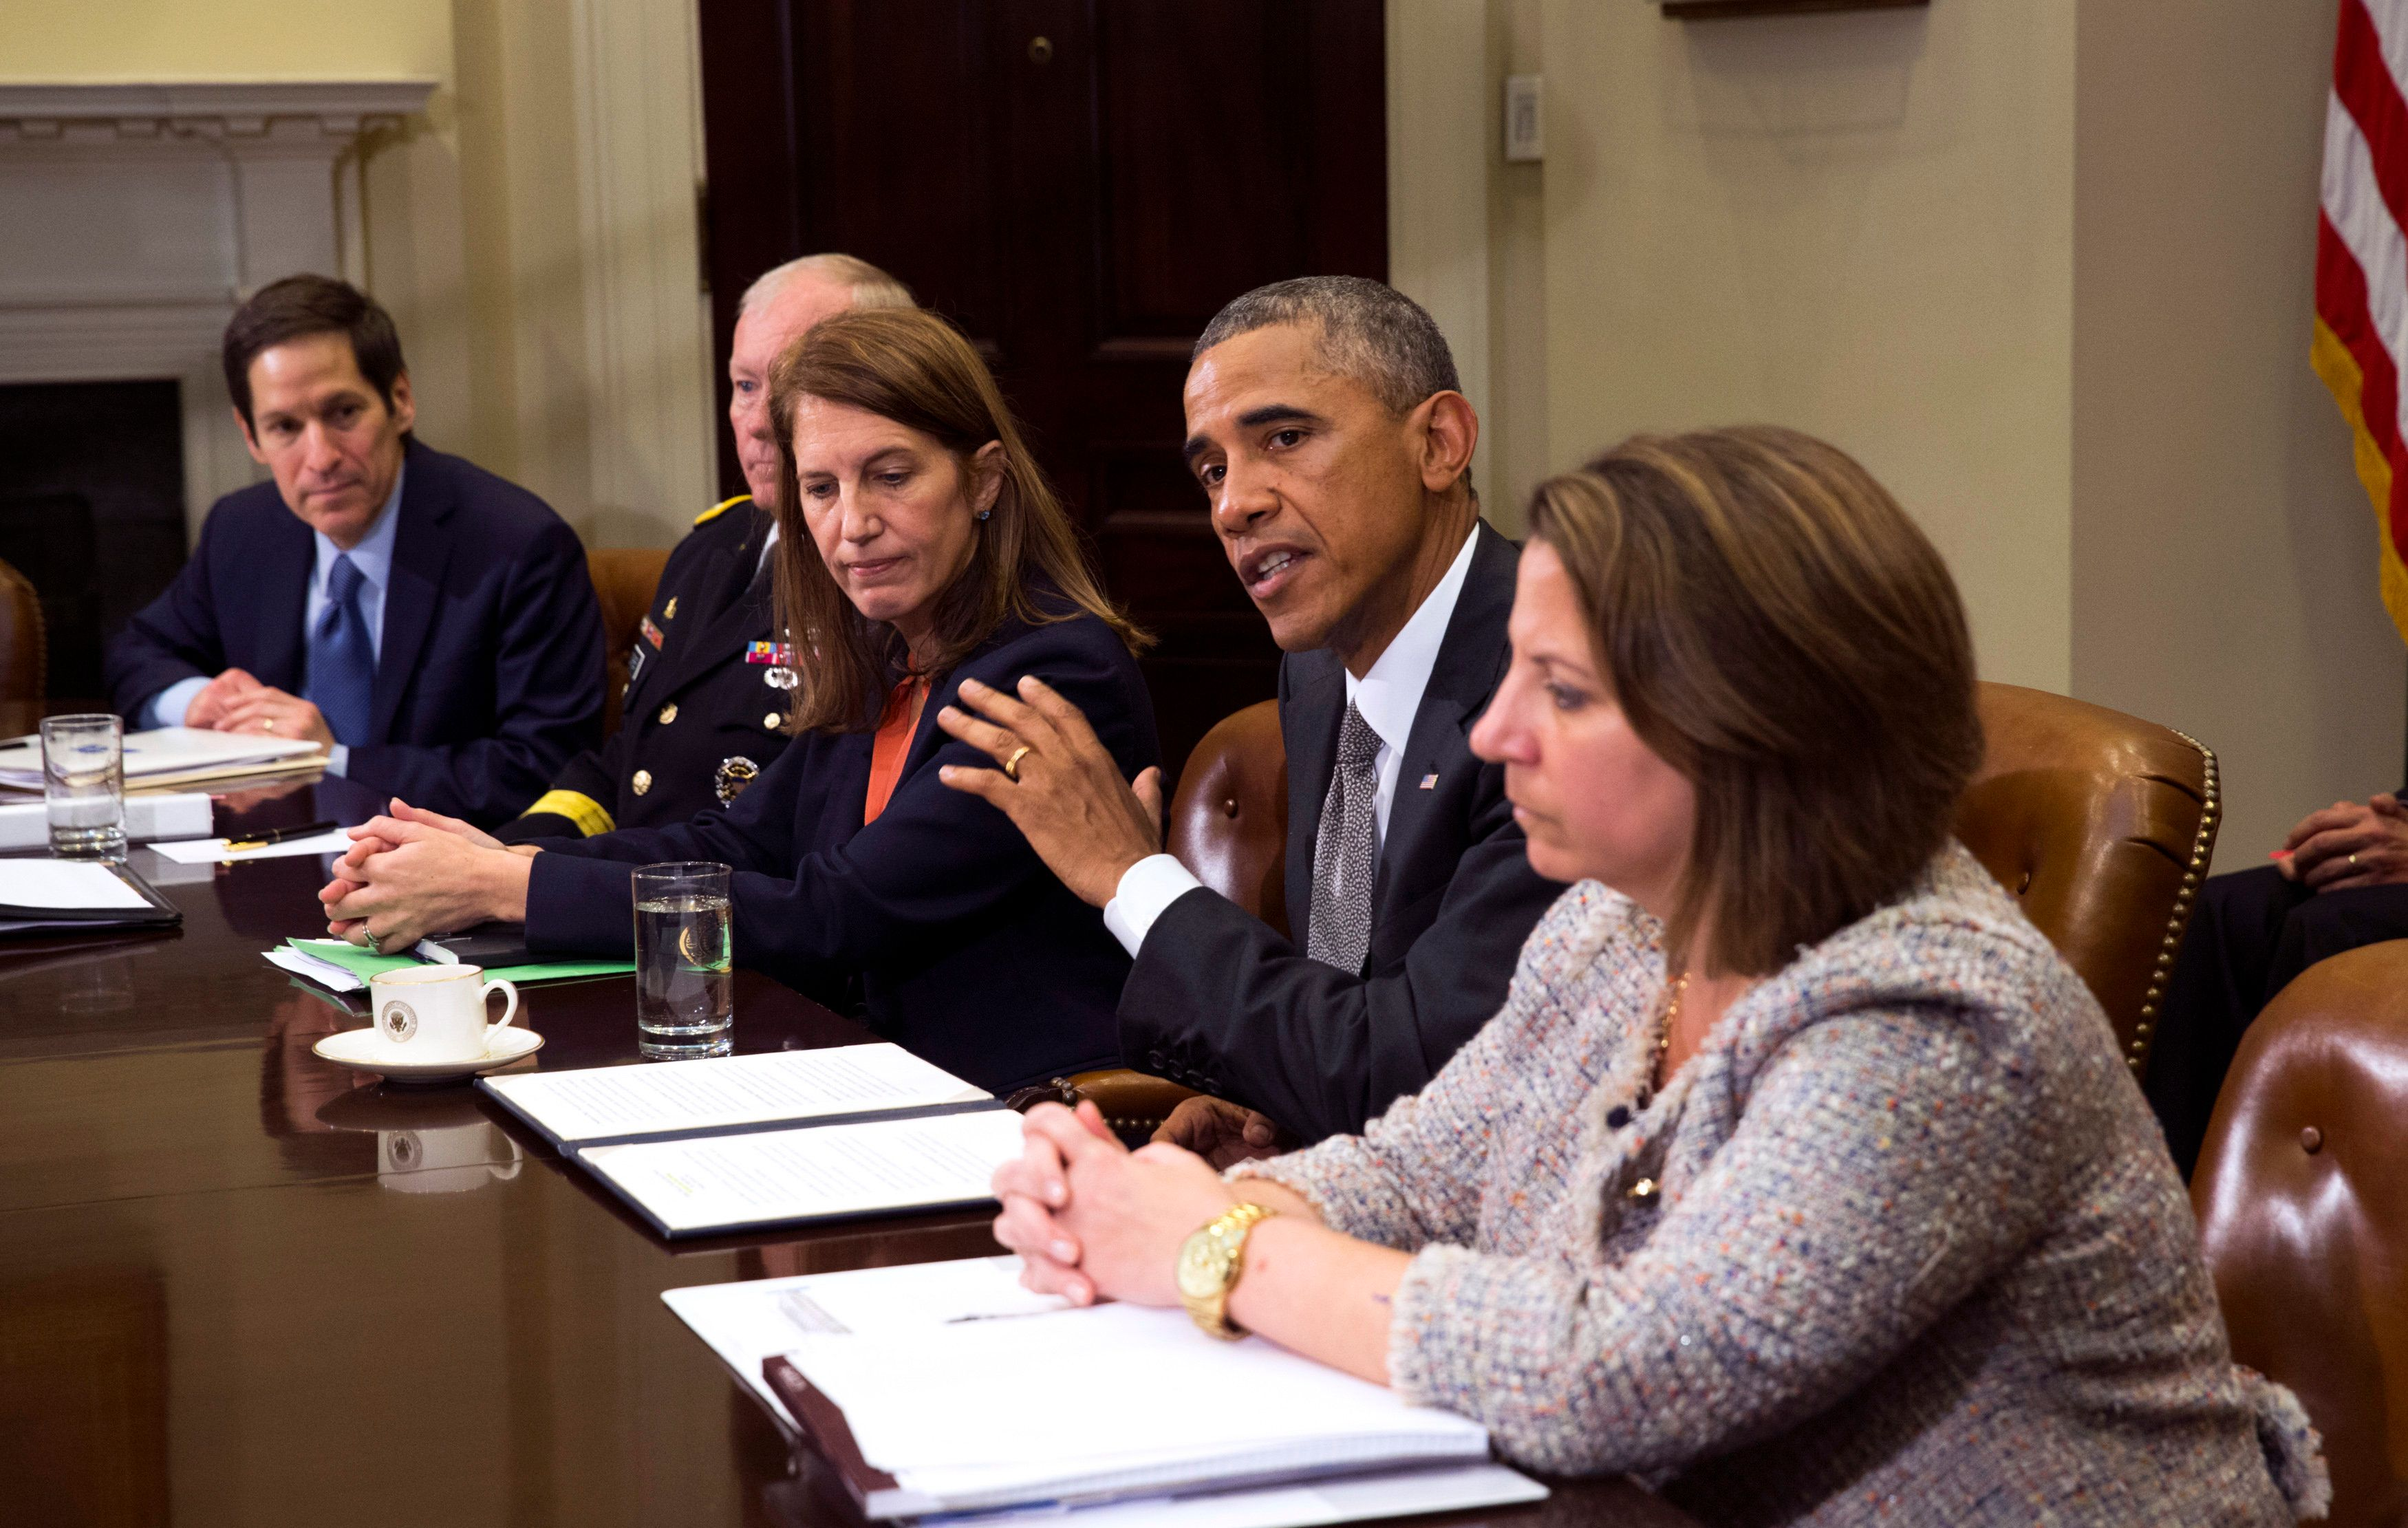 President Obama meeting with his national security team in 2014.